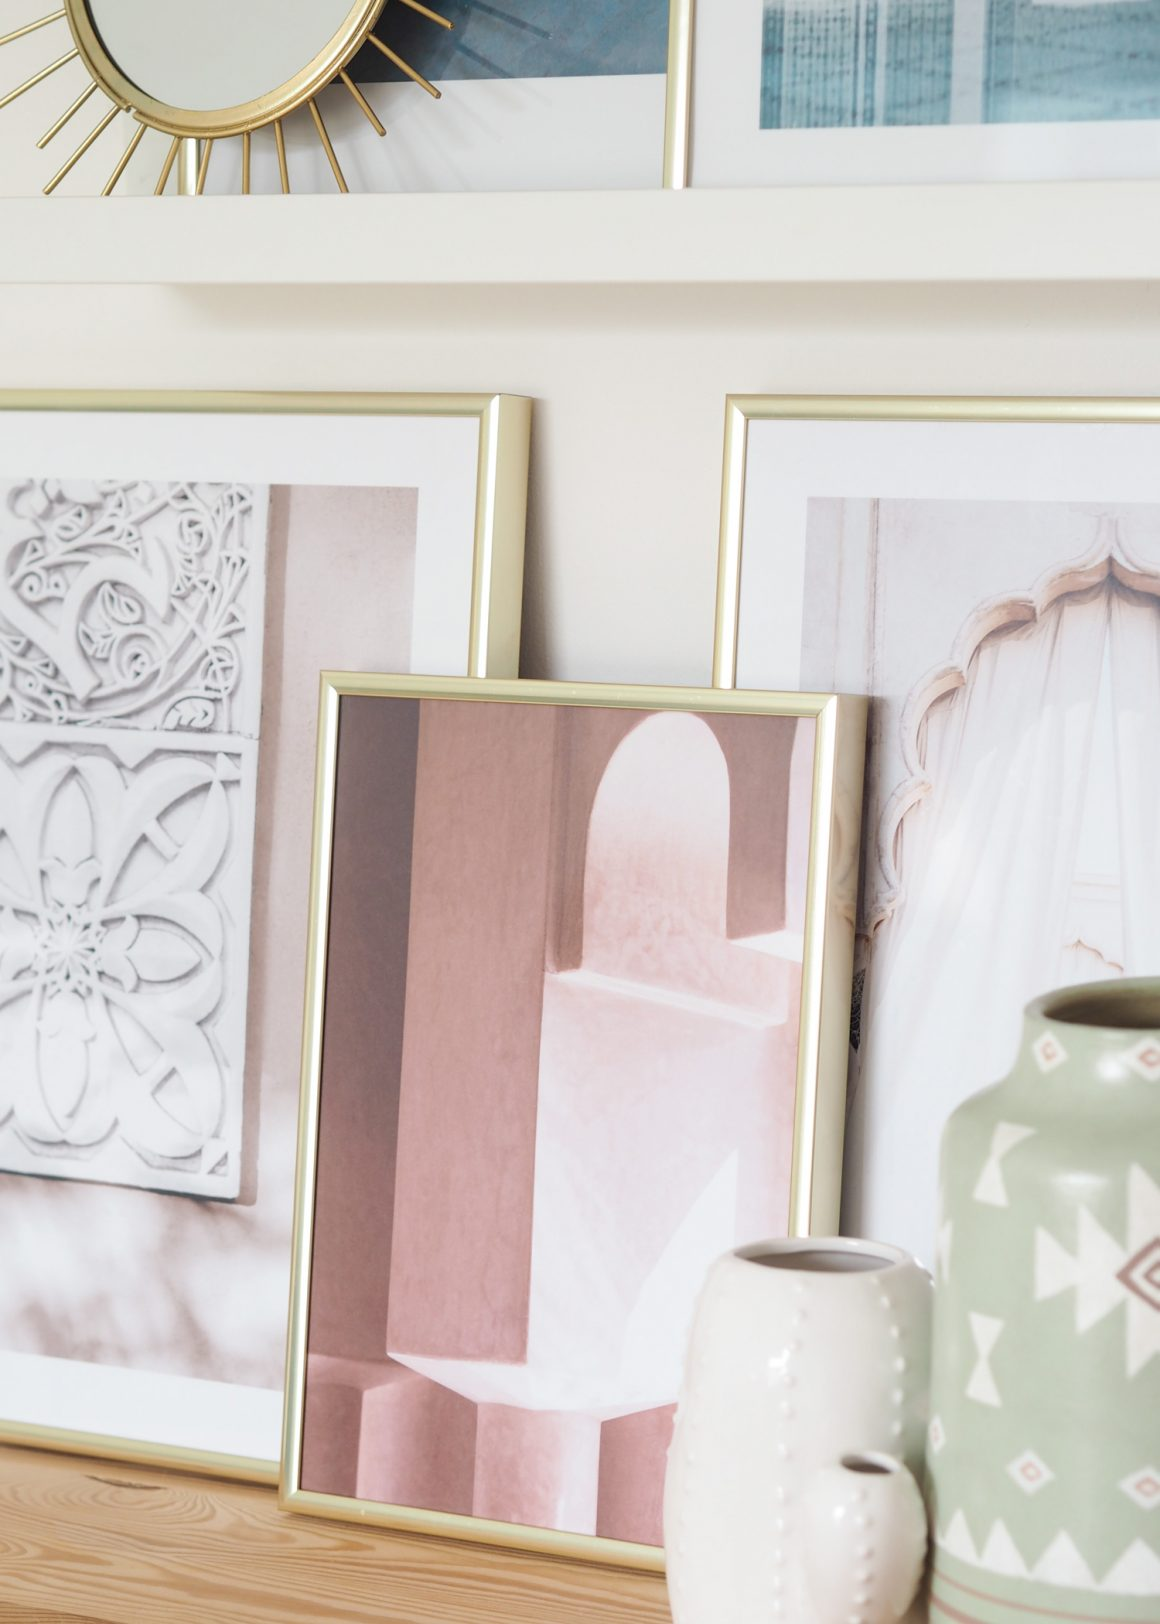 How to choose artwork for your house